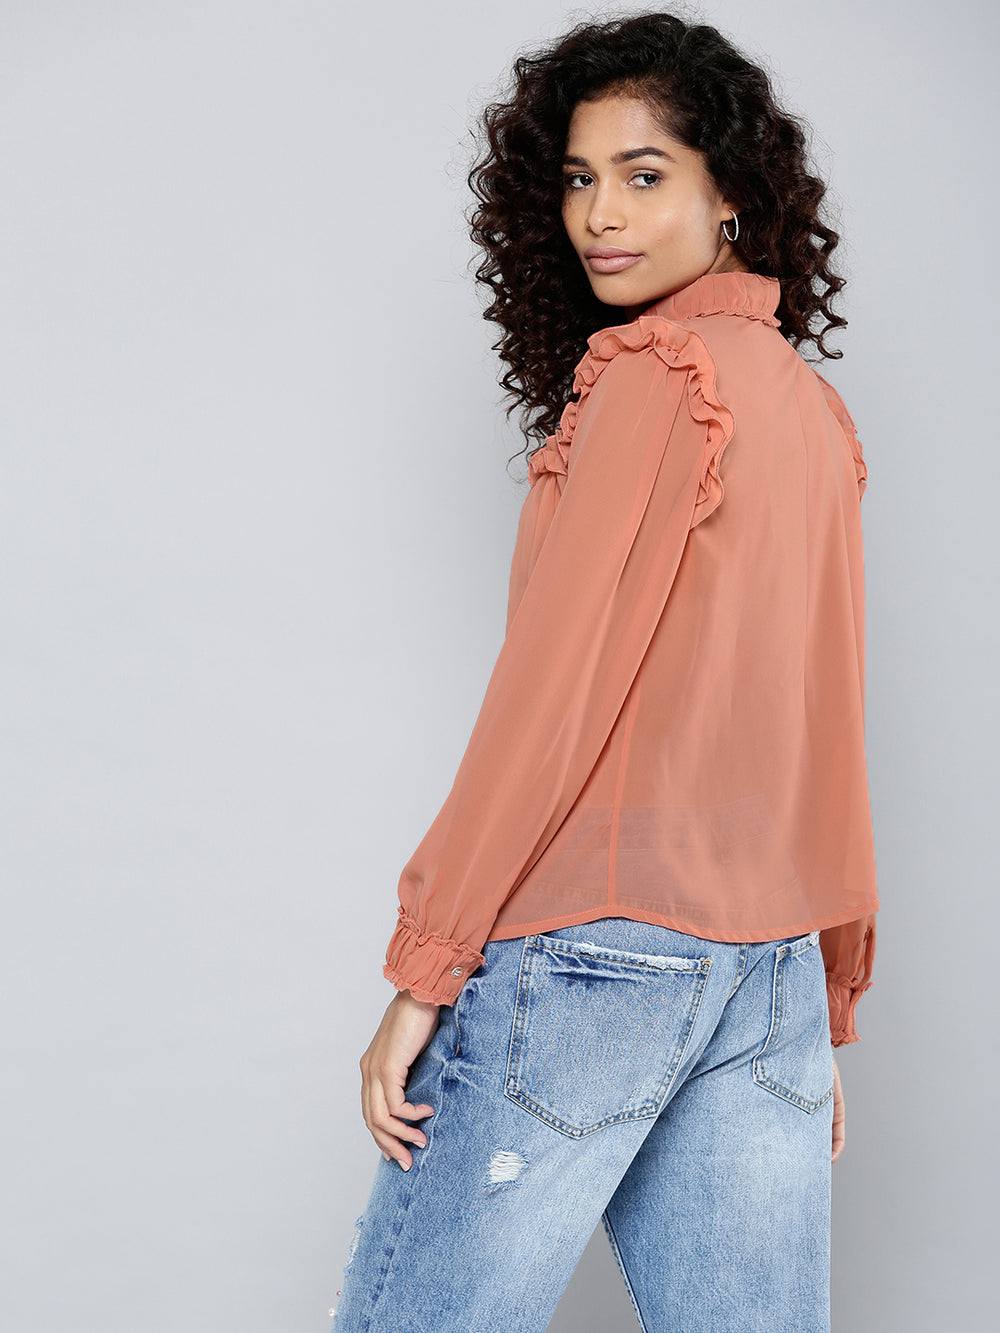 Besiva Women Peach-Coloured Semi-Sheer Shirt Style Top